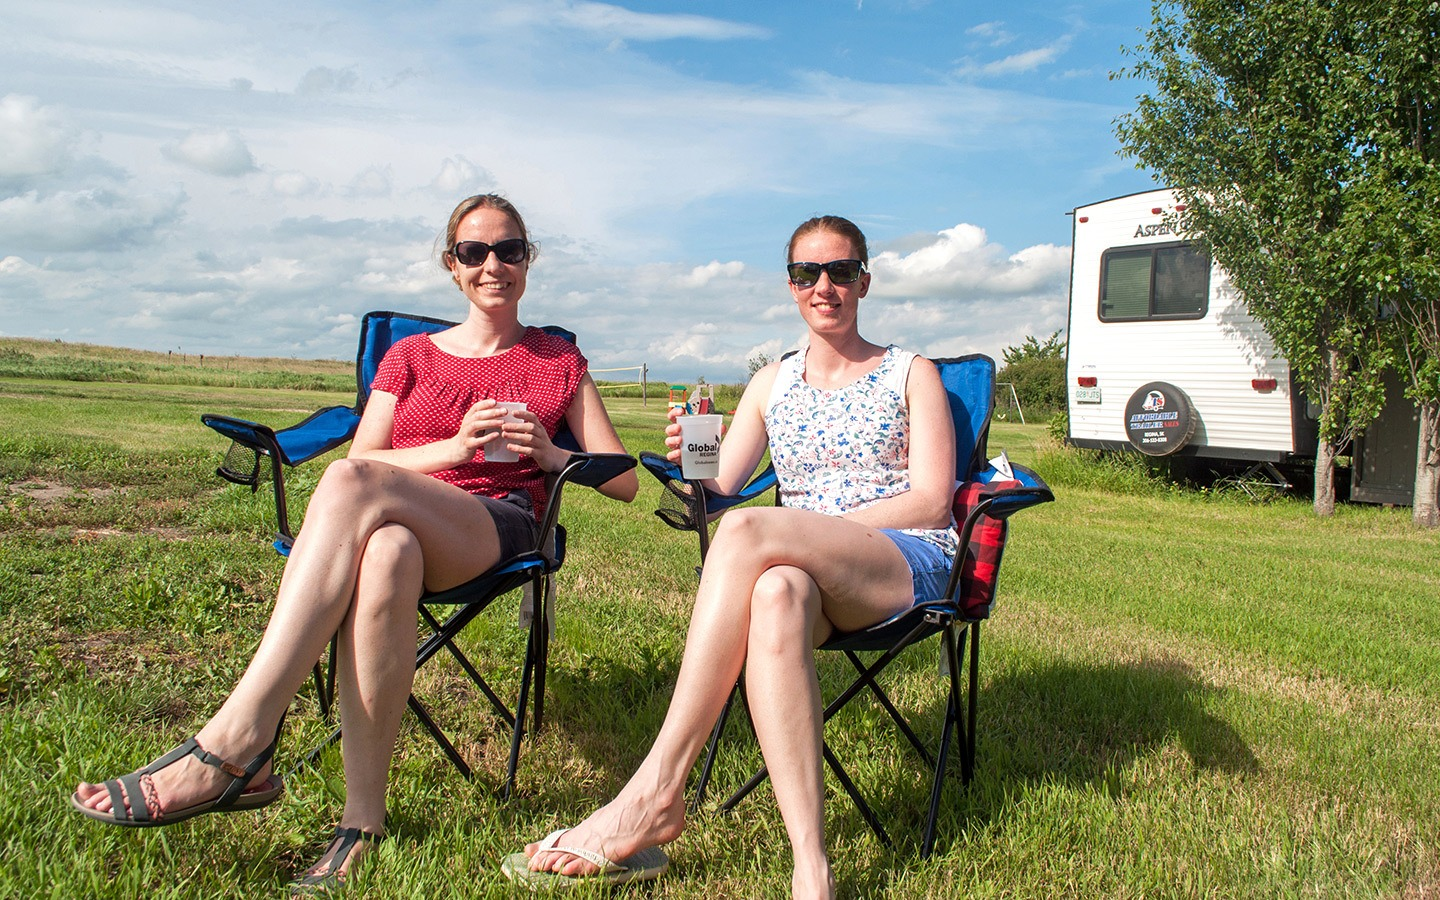 Celebrating Canada Day on RV site